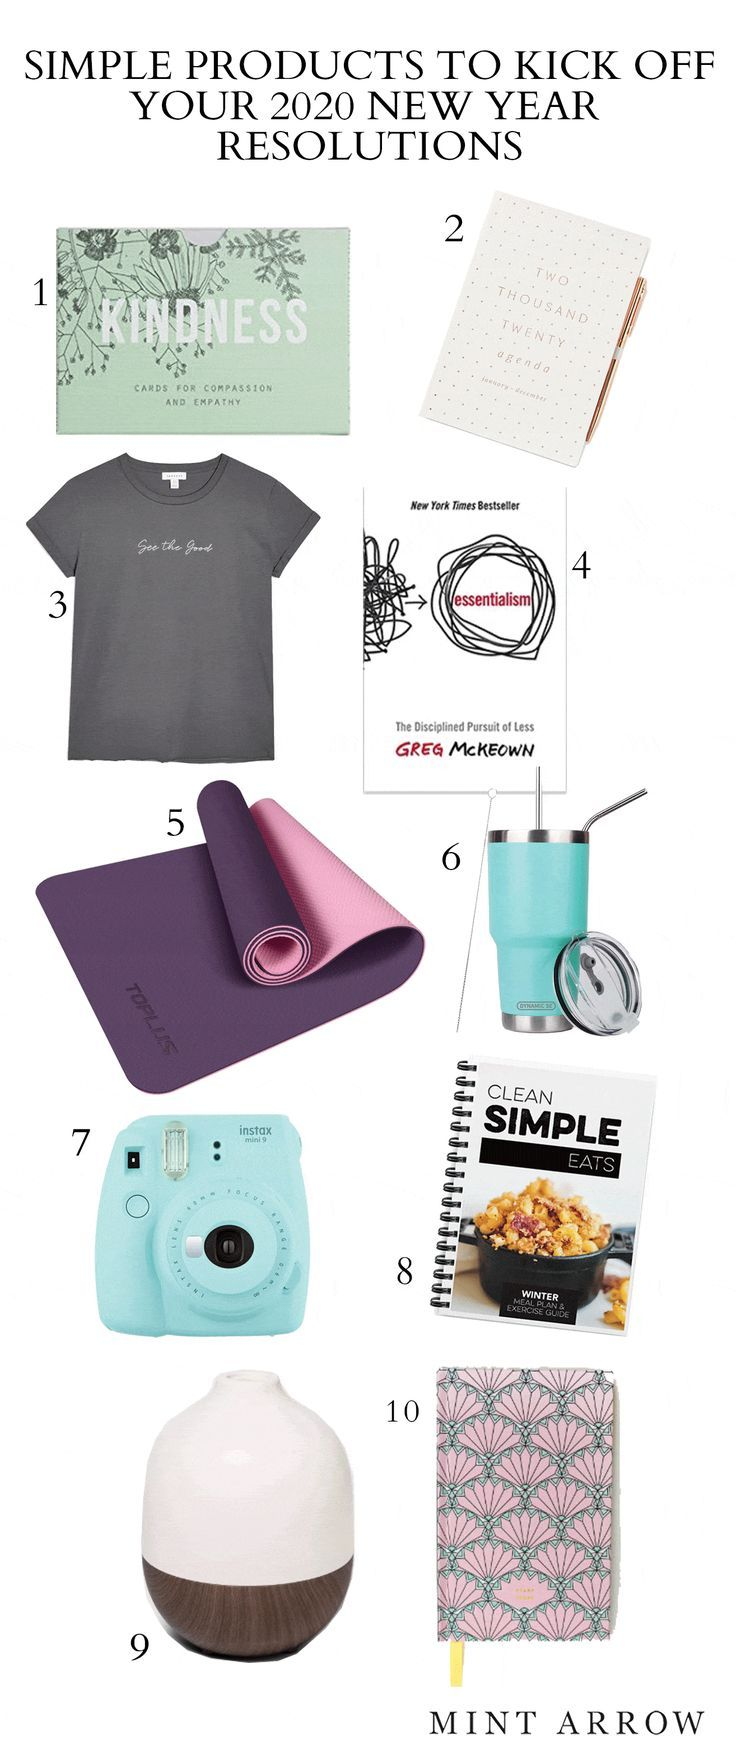 Simple products to kick off your 2020 new year resolutions ...